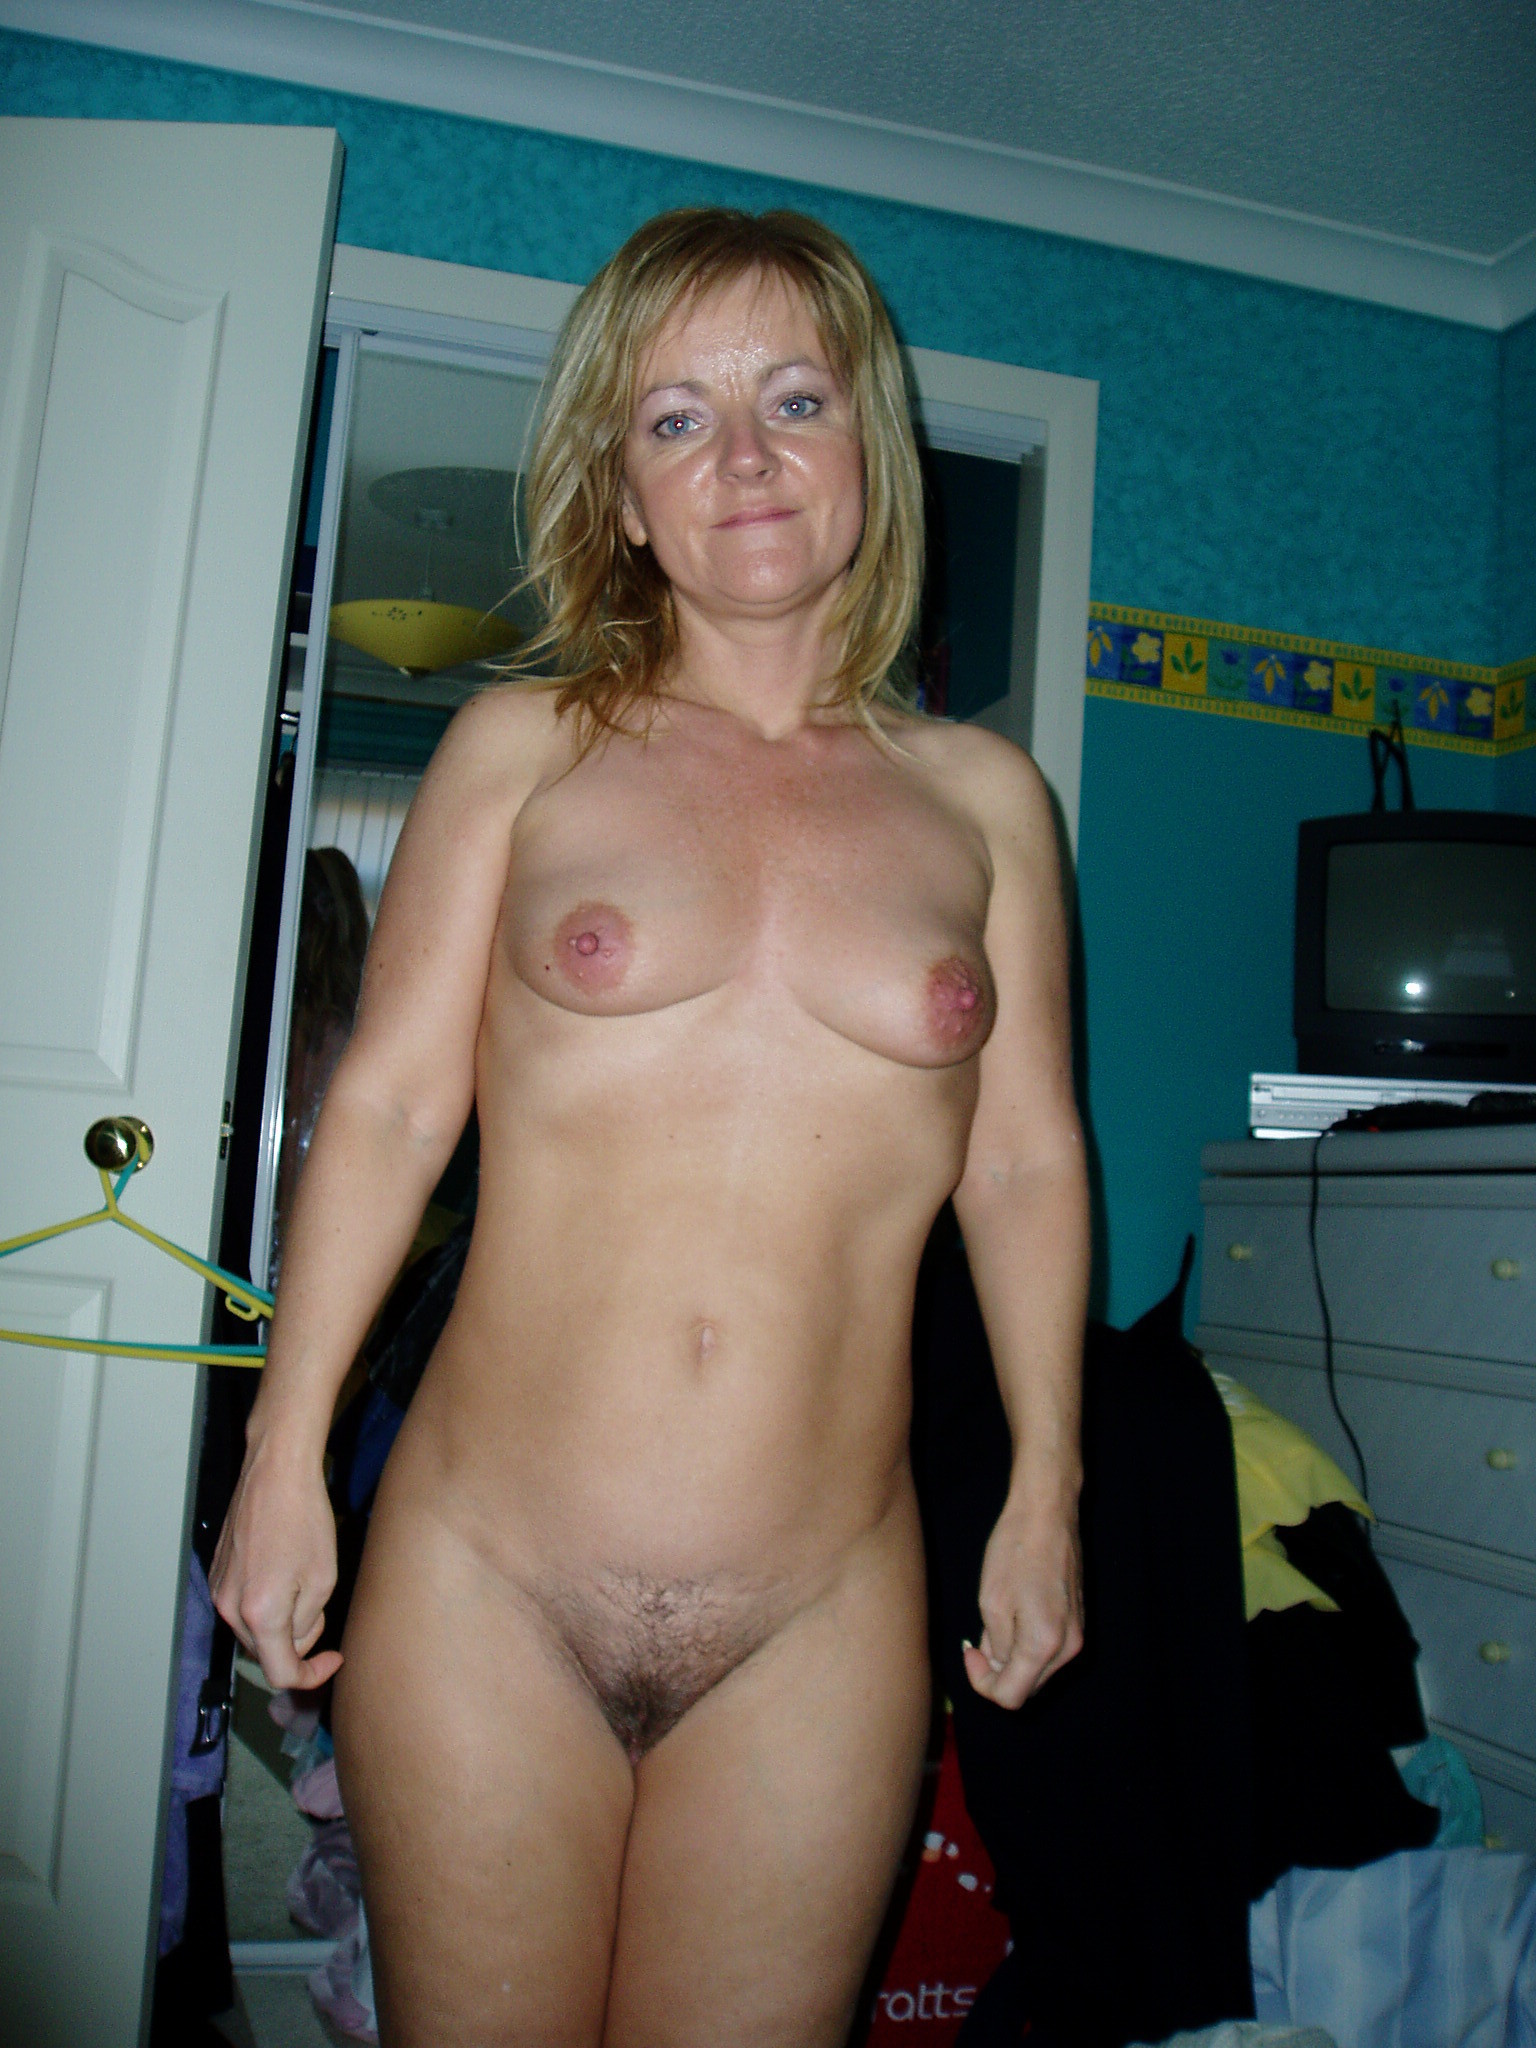 Pics mature naked amateur Restricted